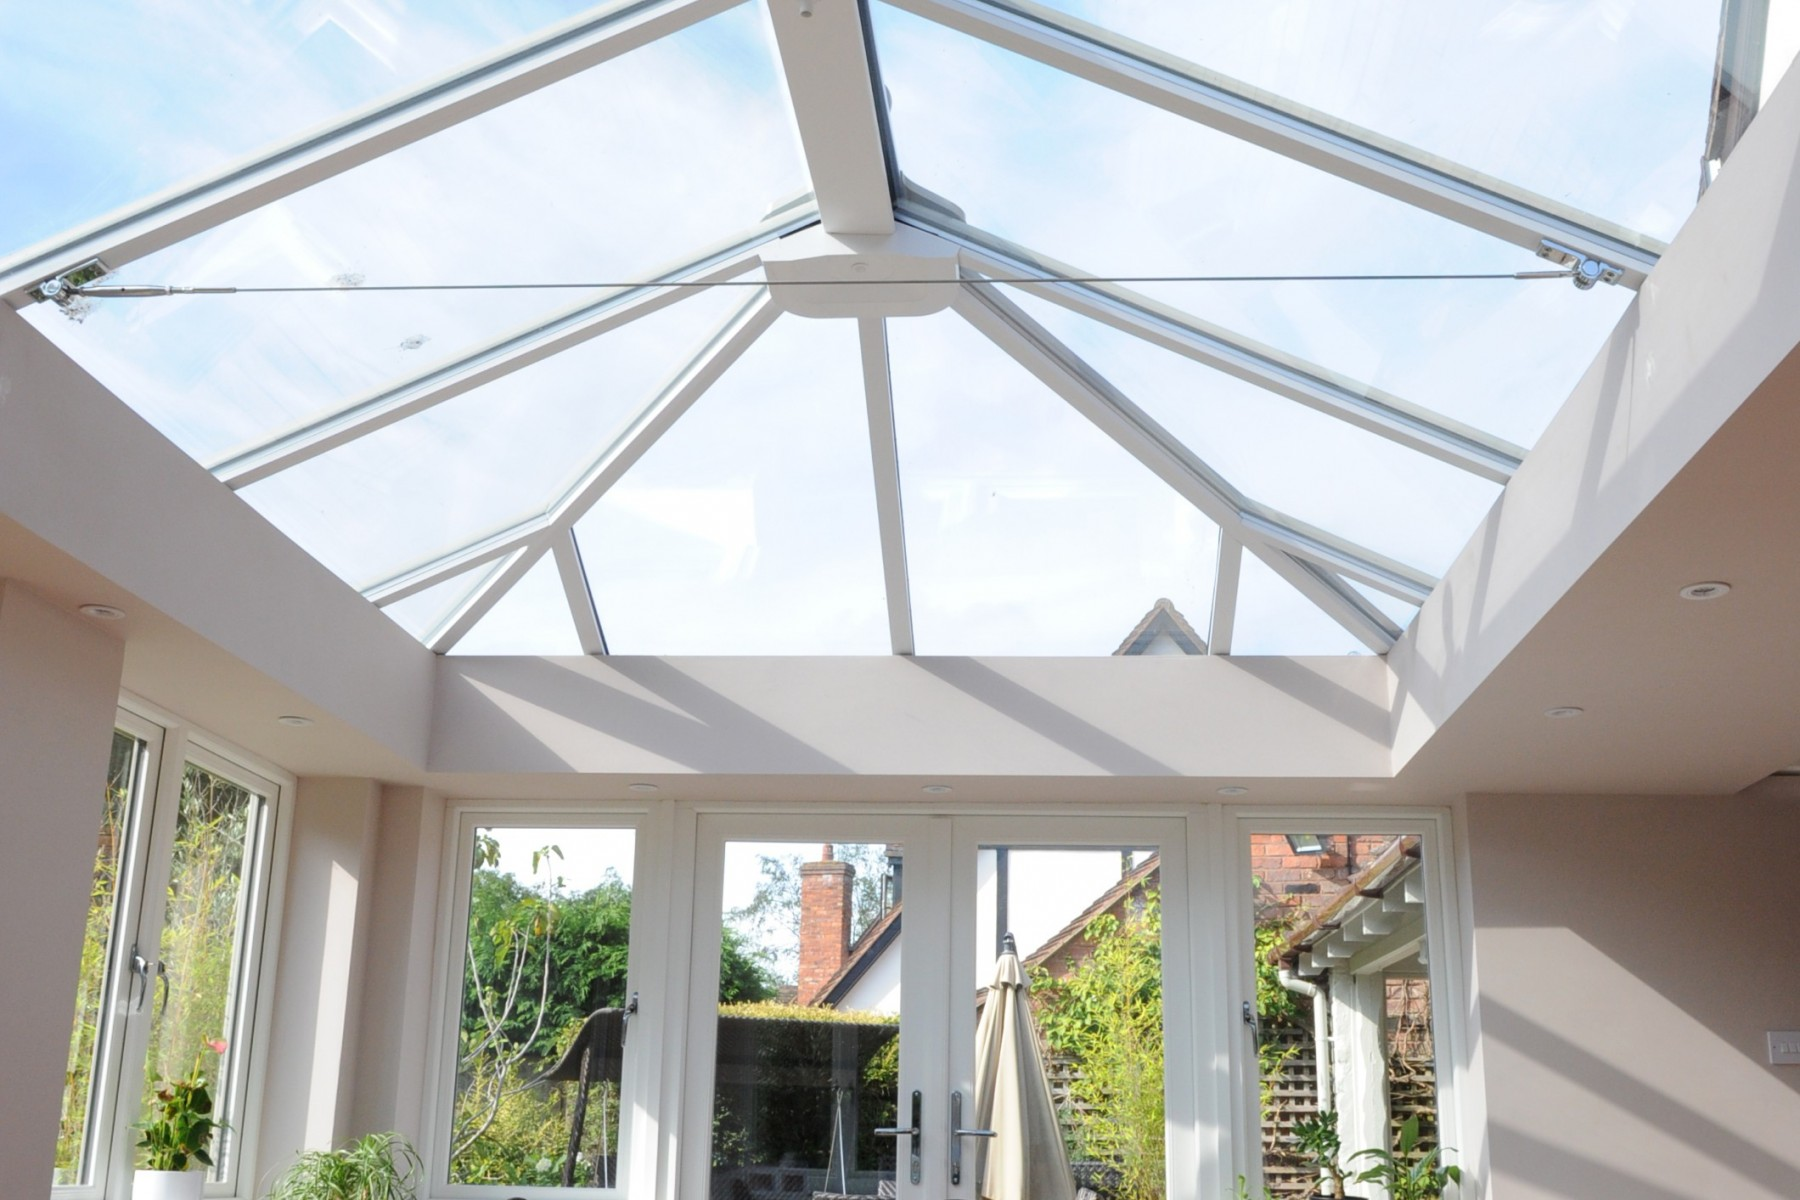 Insulated pelmet conservatory insulation ultraframe glass conservatory roof prices mozeypictures Image collections